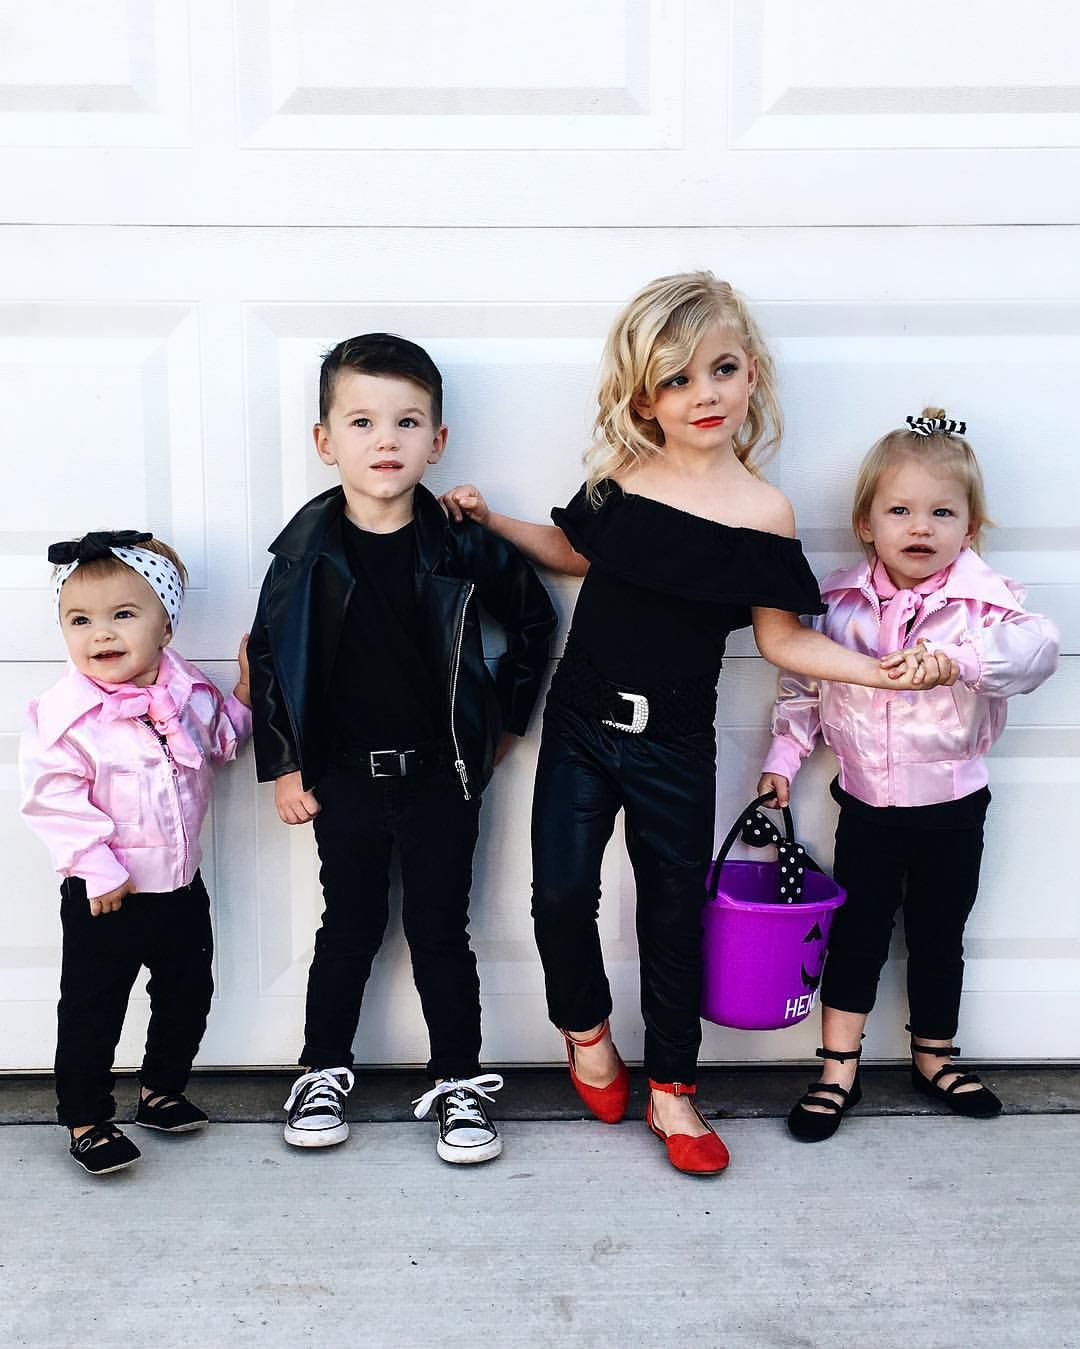 Halloween Grease Grease Lightning Danny Sandy Pink Ladies Krista Hor Grease Costumes For Kids Halloween Kids Costumes Girls Halloween Costumes For Kids